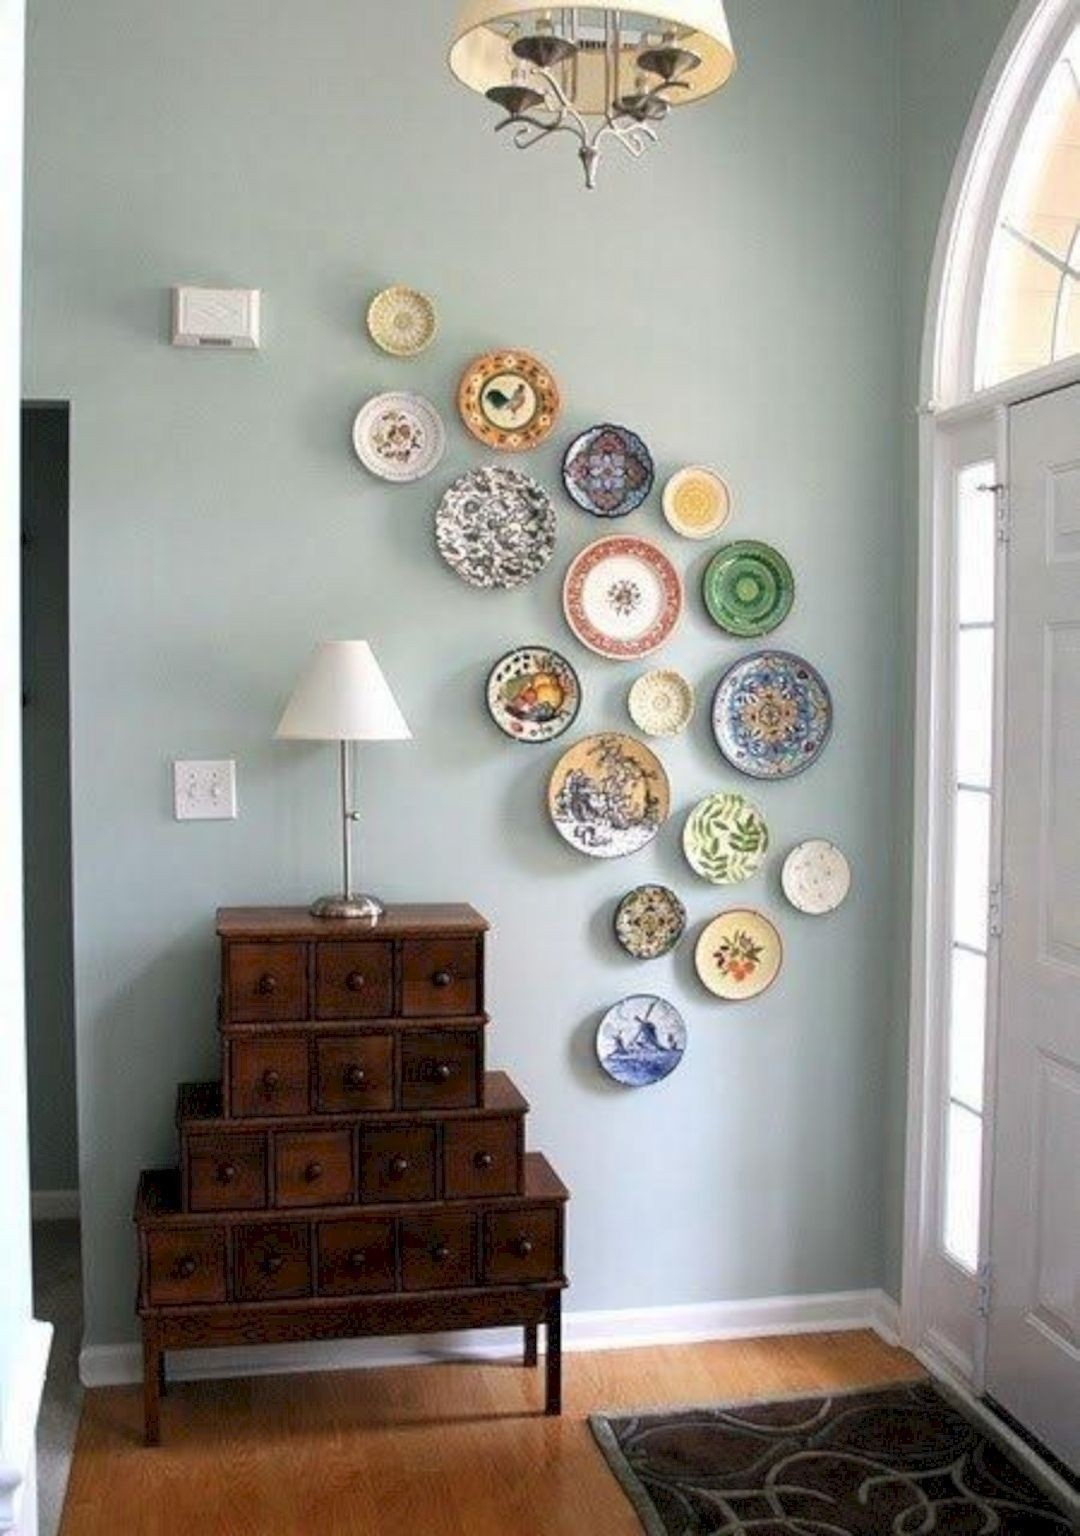 Decorative plates for wall hanging & Decorative Plates For Wall Hanging - Foter